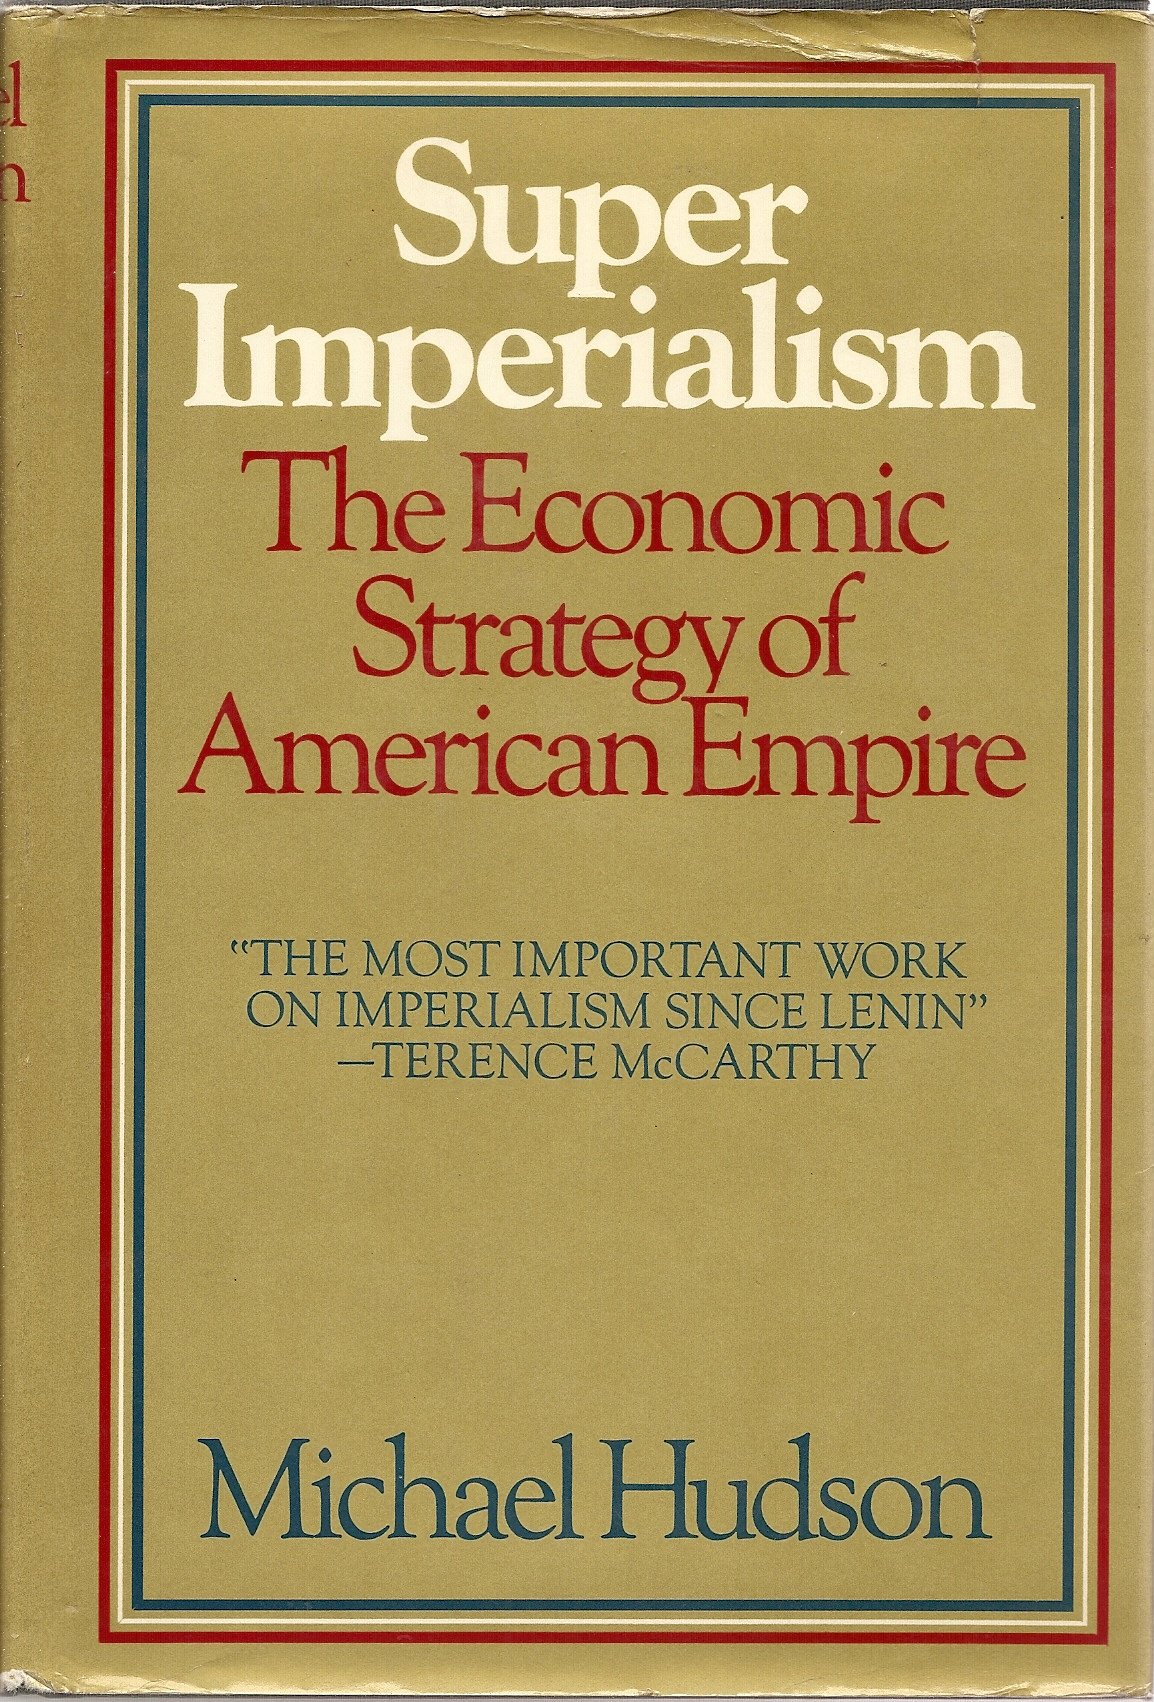 Image result for Super Imperialism: The Economic Strategy of American Empire